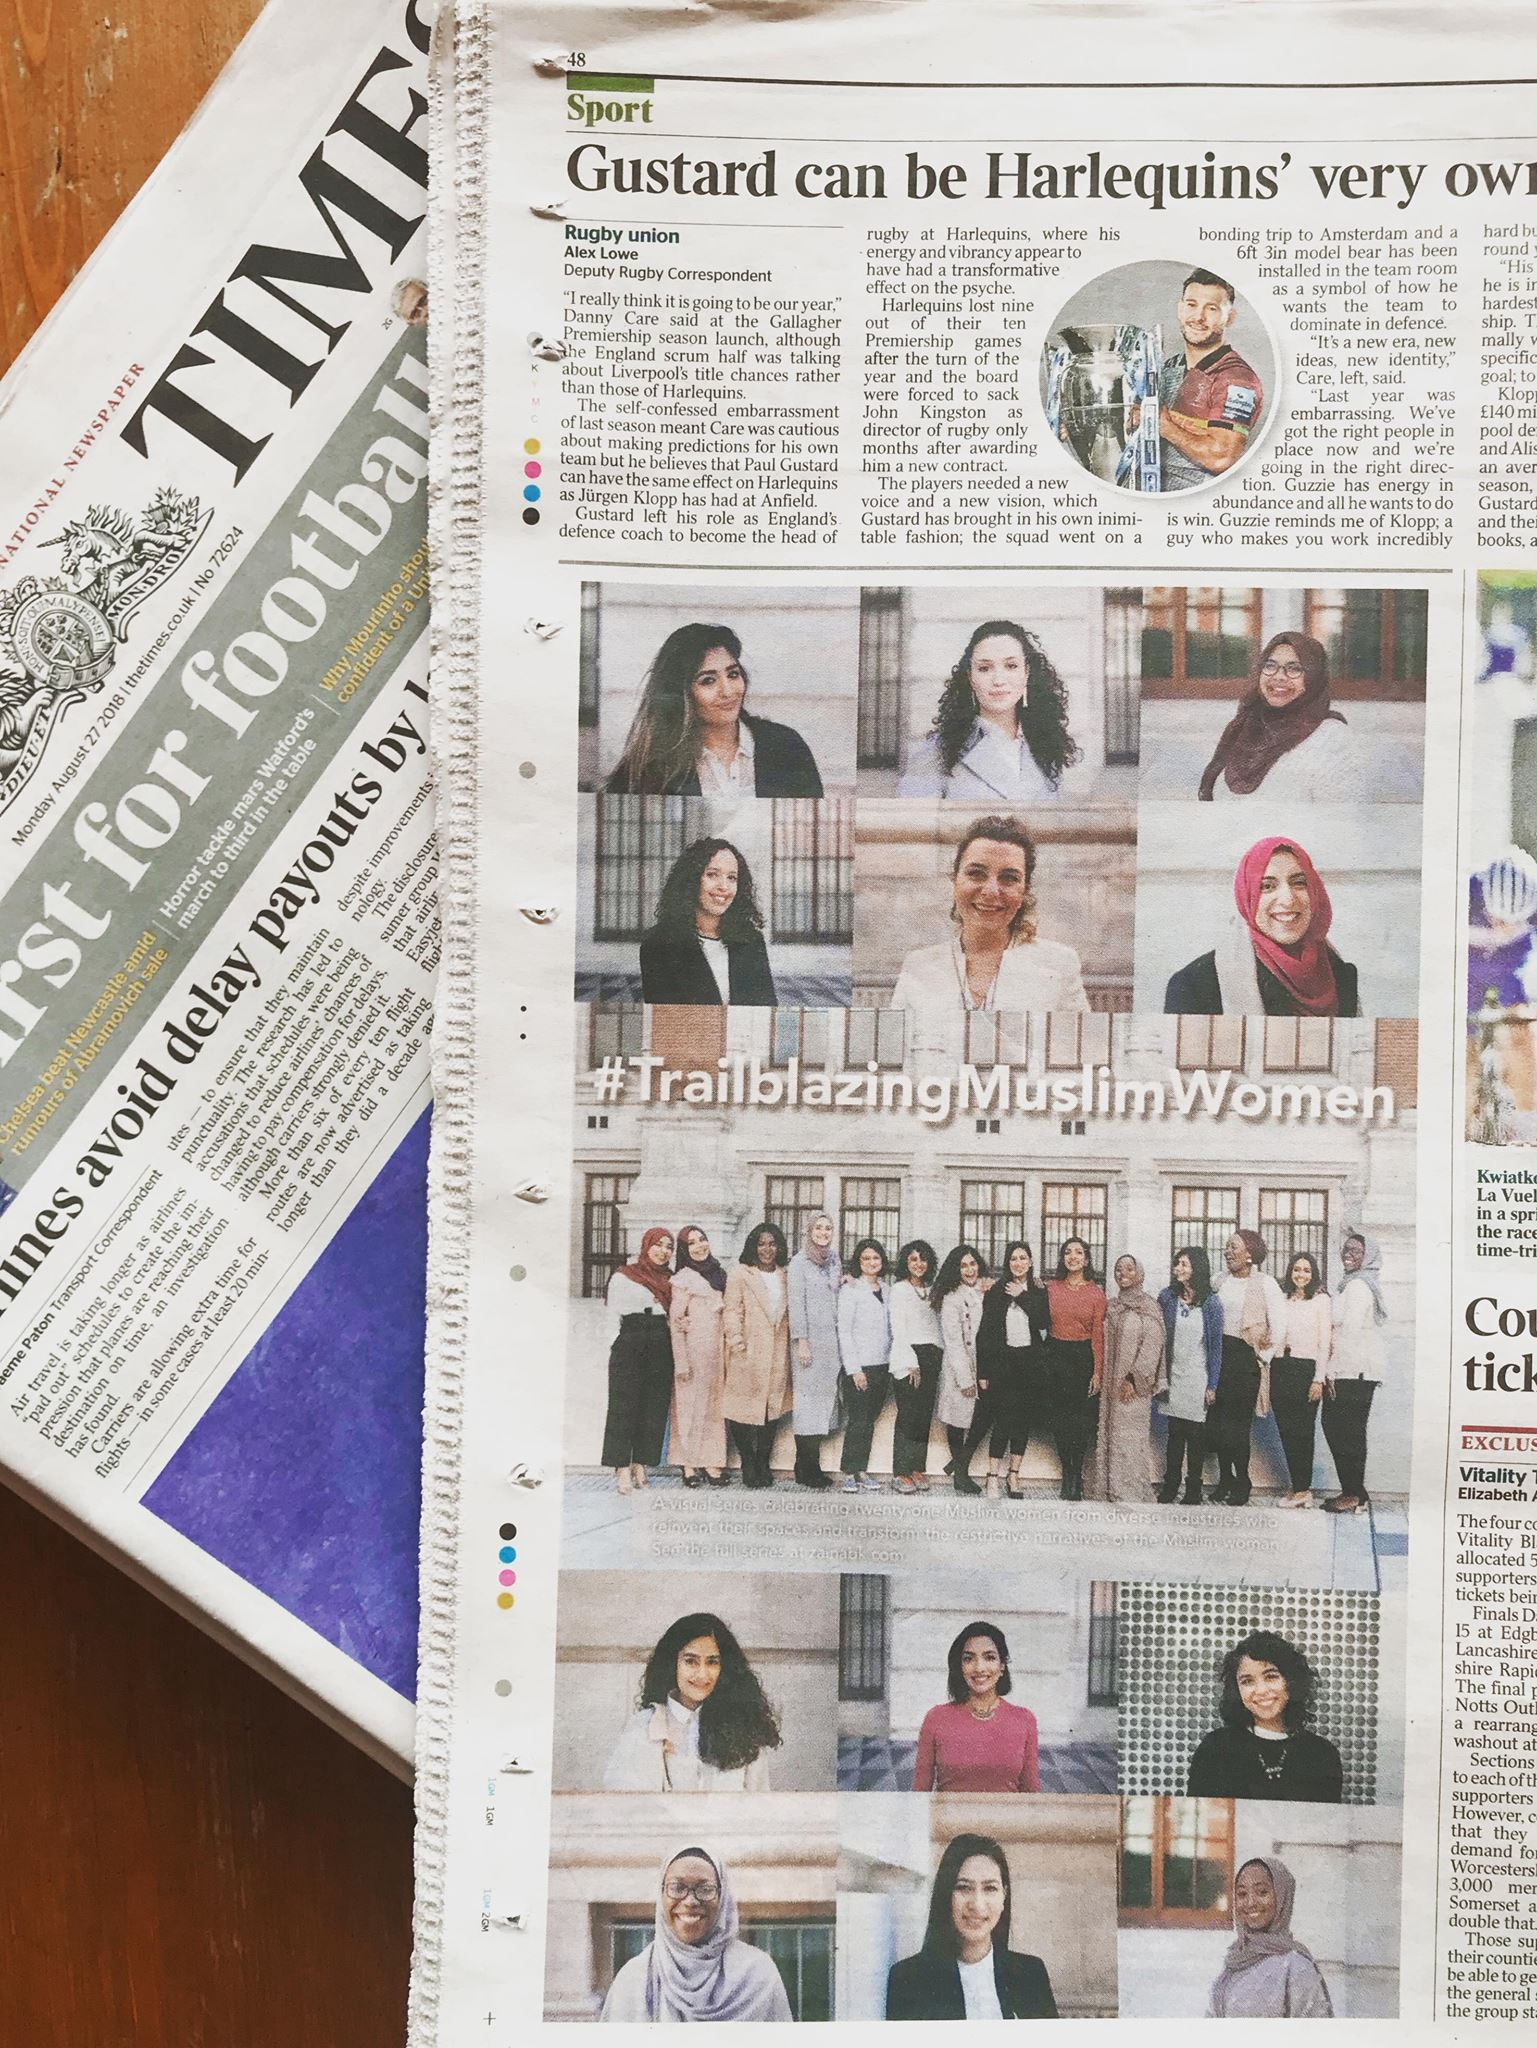 THE TIMES  FEATURE  For IWD, our cofounder Leyya took part in a photo series documenting trailblazing Muslim women that was recently featured in The Times. The project was curated by Zainab Khan and can be viewed below.